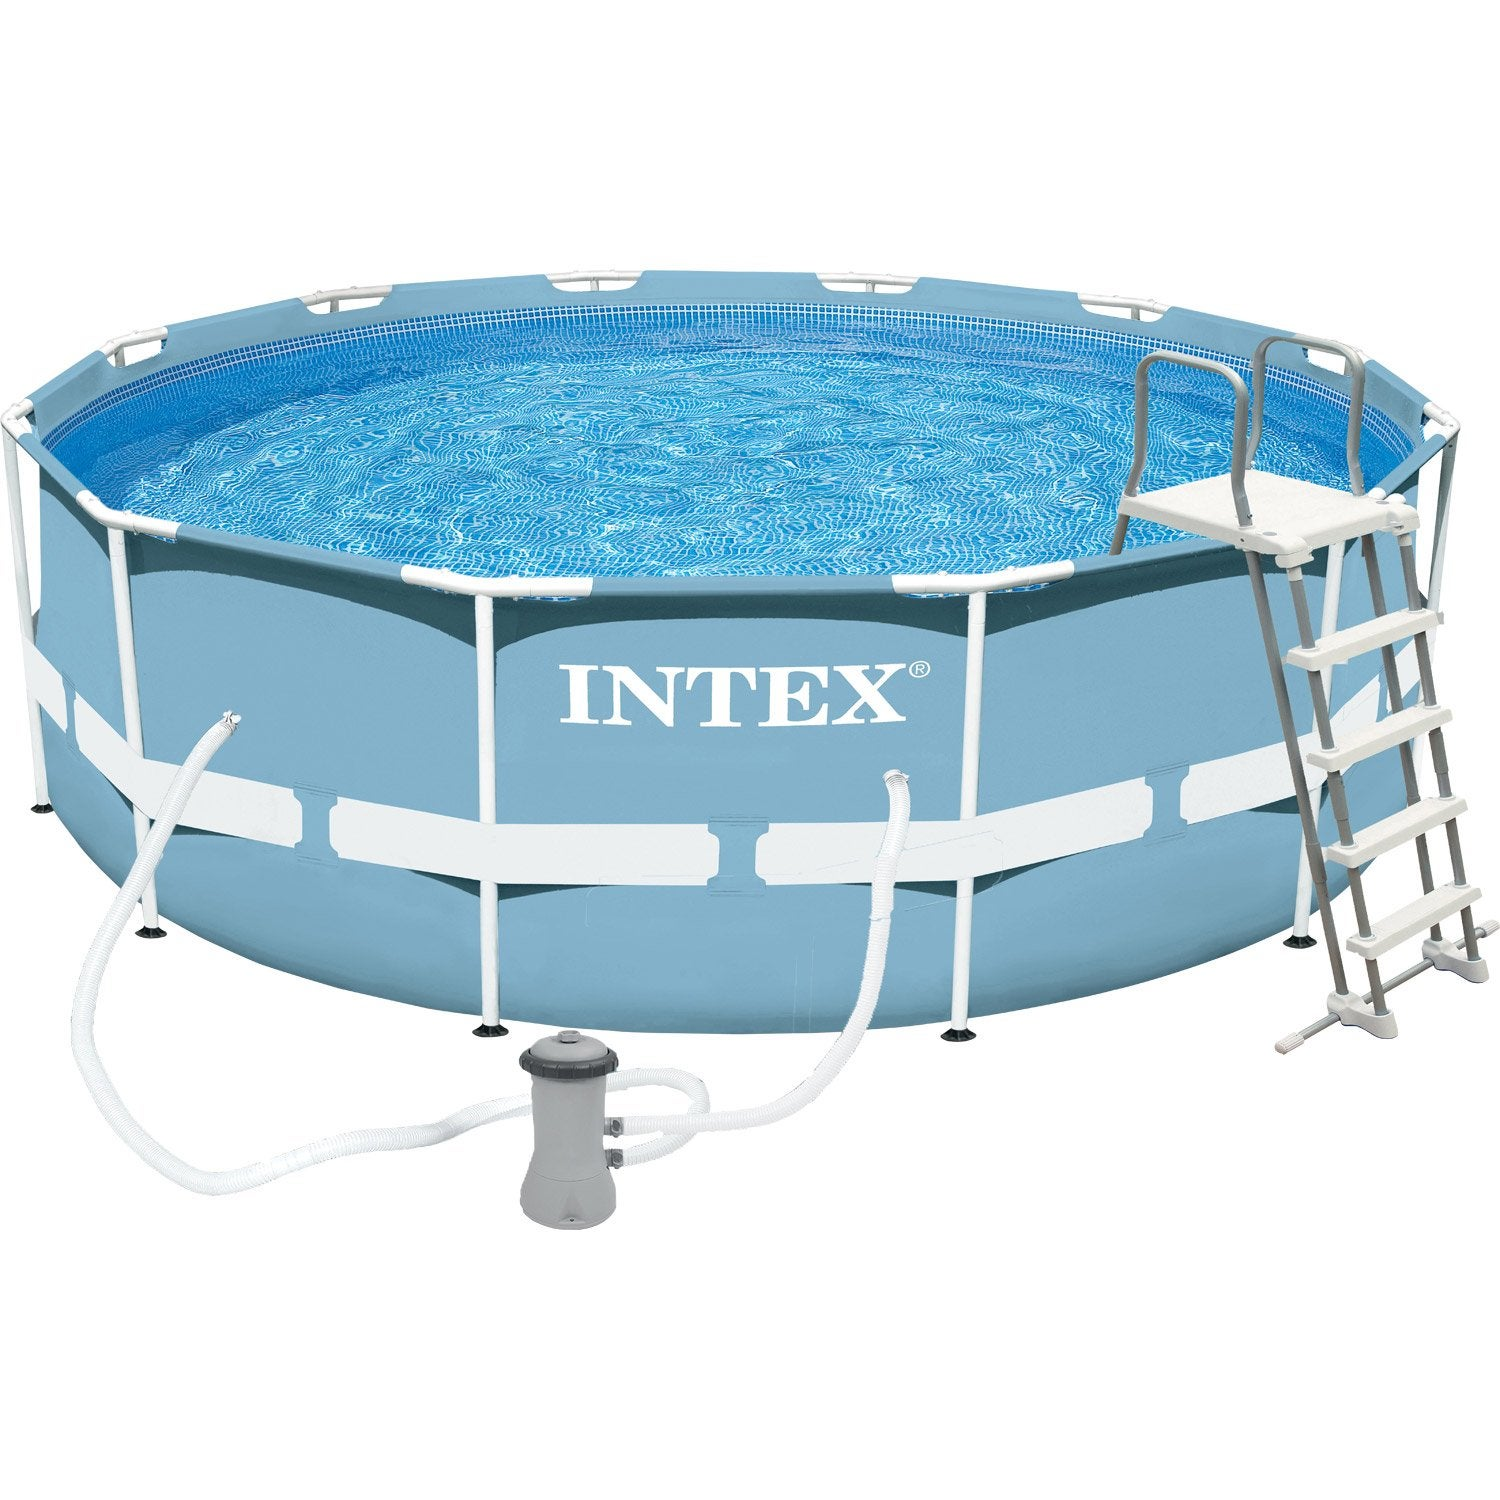 Piscine hors sol autoportante tubulaire prism frame intex for Enrouleur bache piscine hors sol tubulaire intex